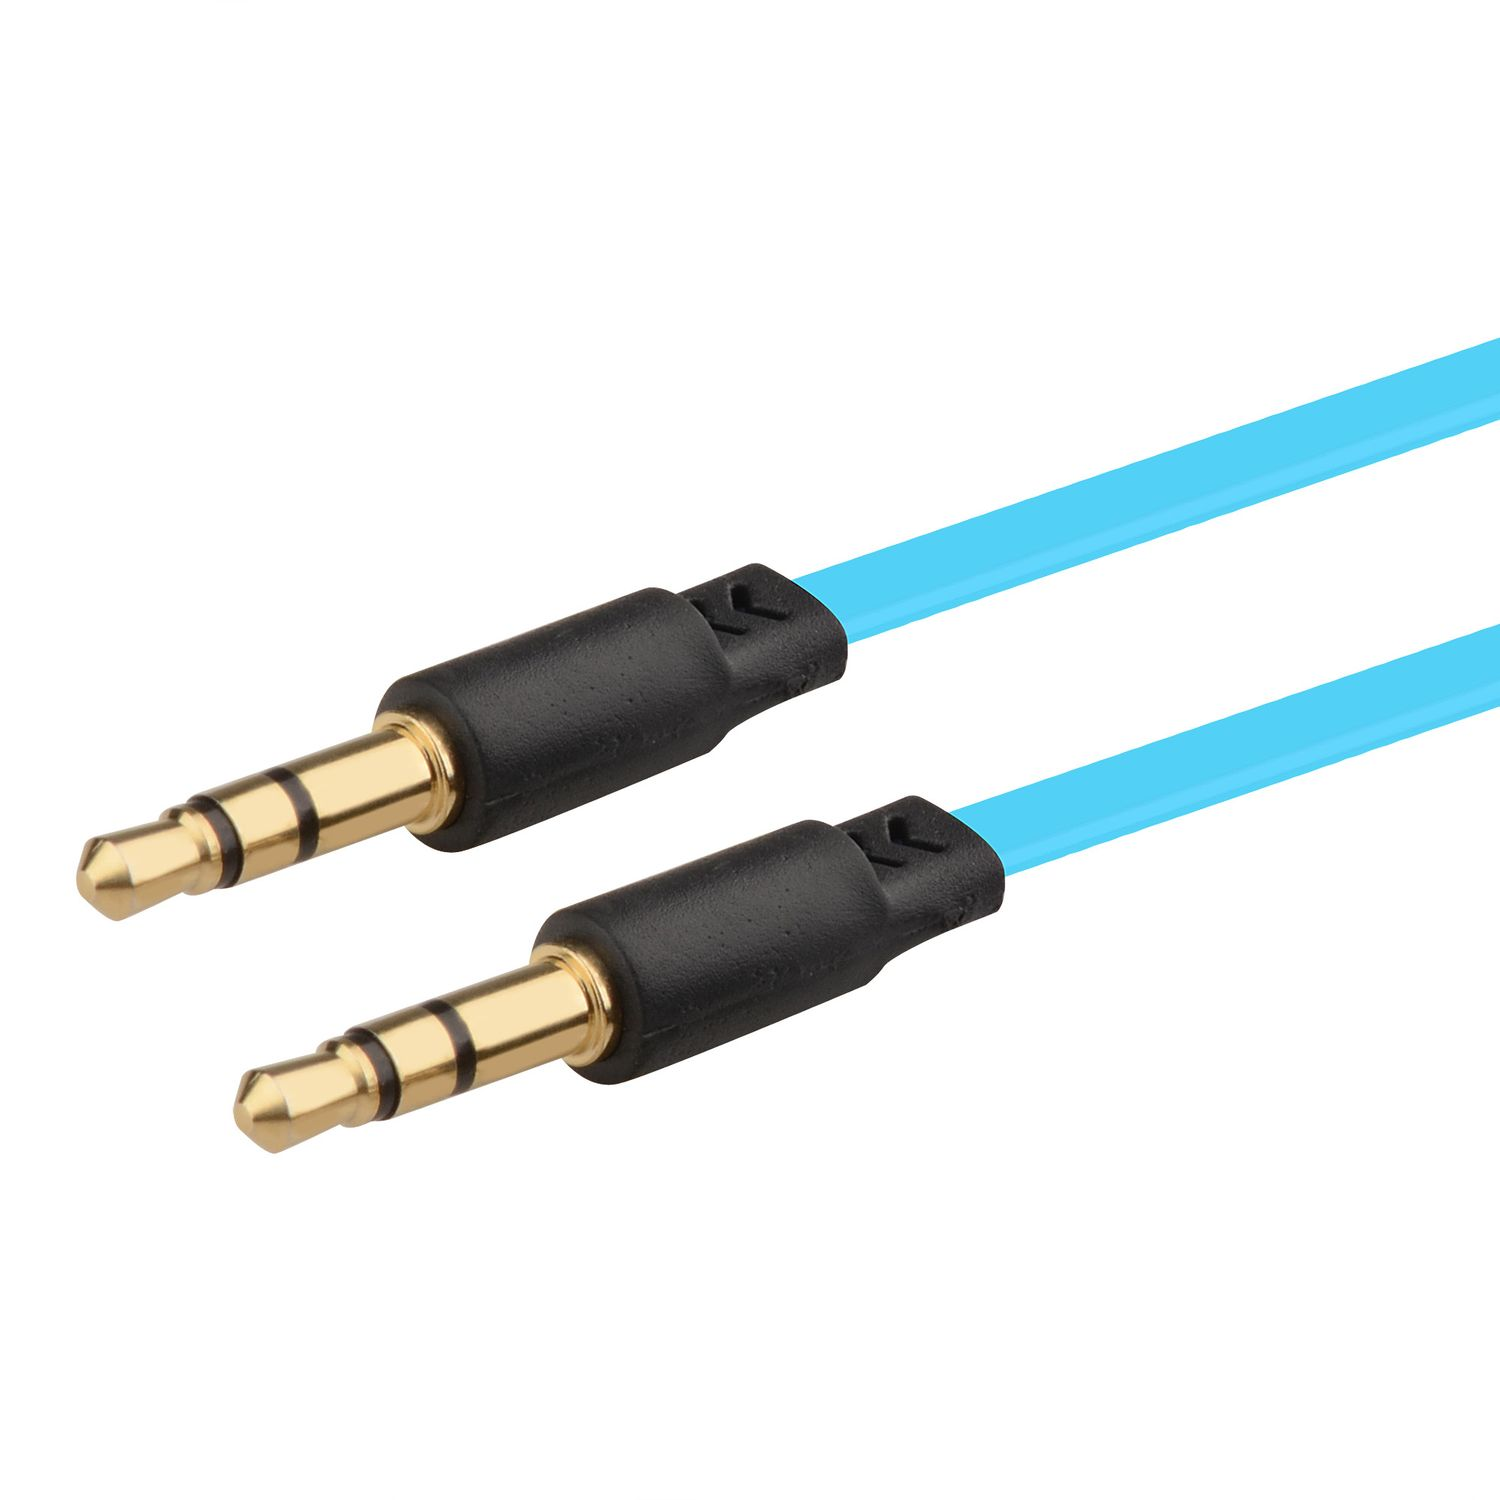 3.5mm Audio Cable by Insten 3' 3.5mm Audio Cable for Soundbar Smartphone Cell phone Mobile iPhone iPad Mini 5 iPad Air 2019 MP3 MP4 Tablet PC Laptop Music Out to Speaker Car Aux Audio System